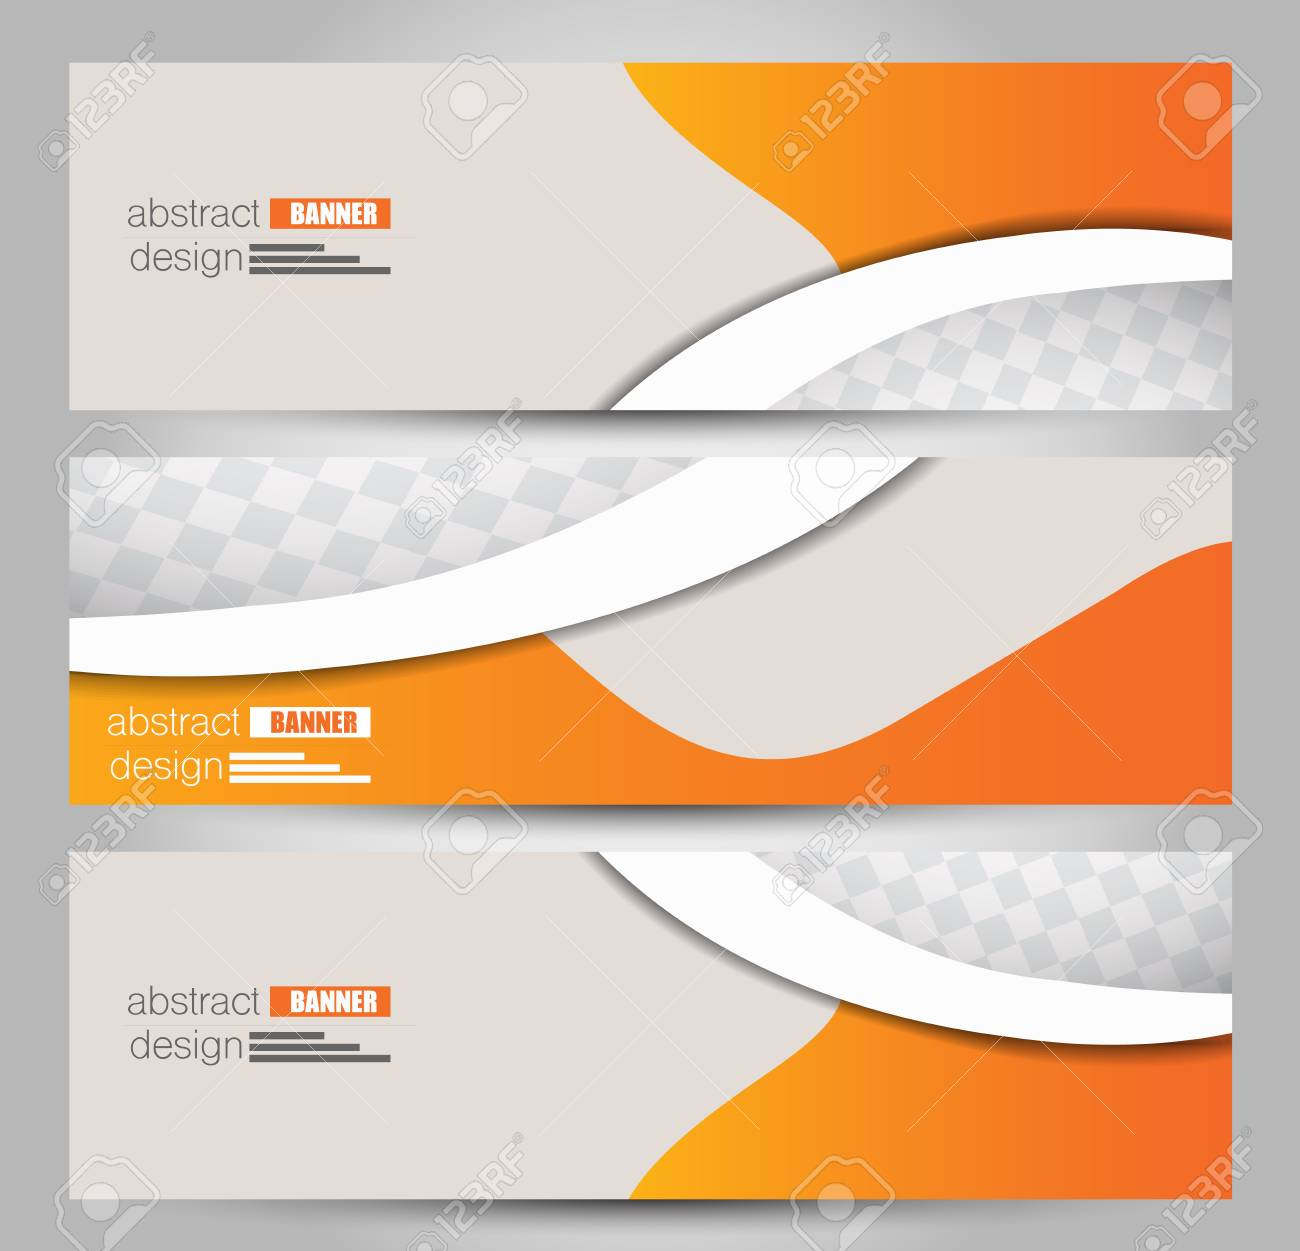 Banner Template Abstract Background For Design Business Education Royalty Free Cliparts Vectors And Stock Illustration Image 91601504